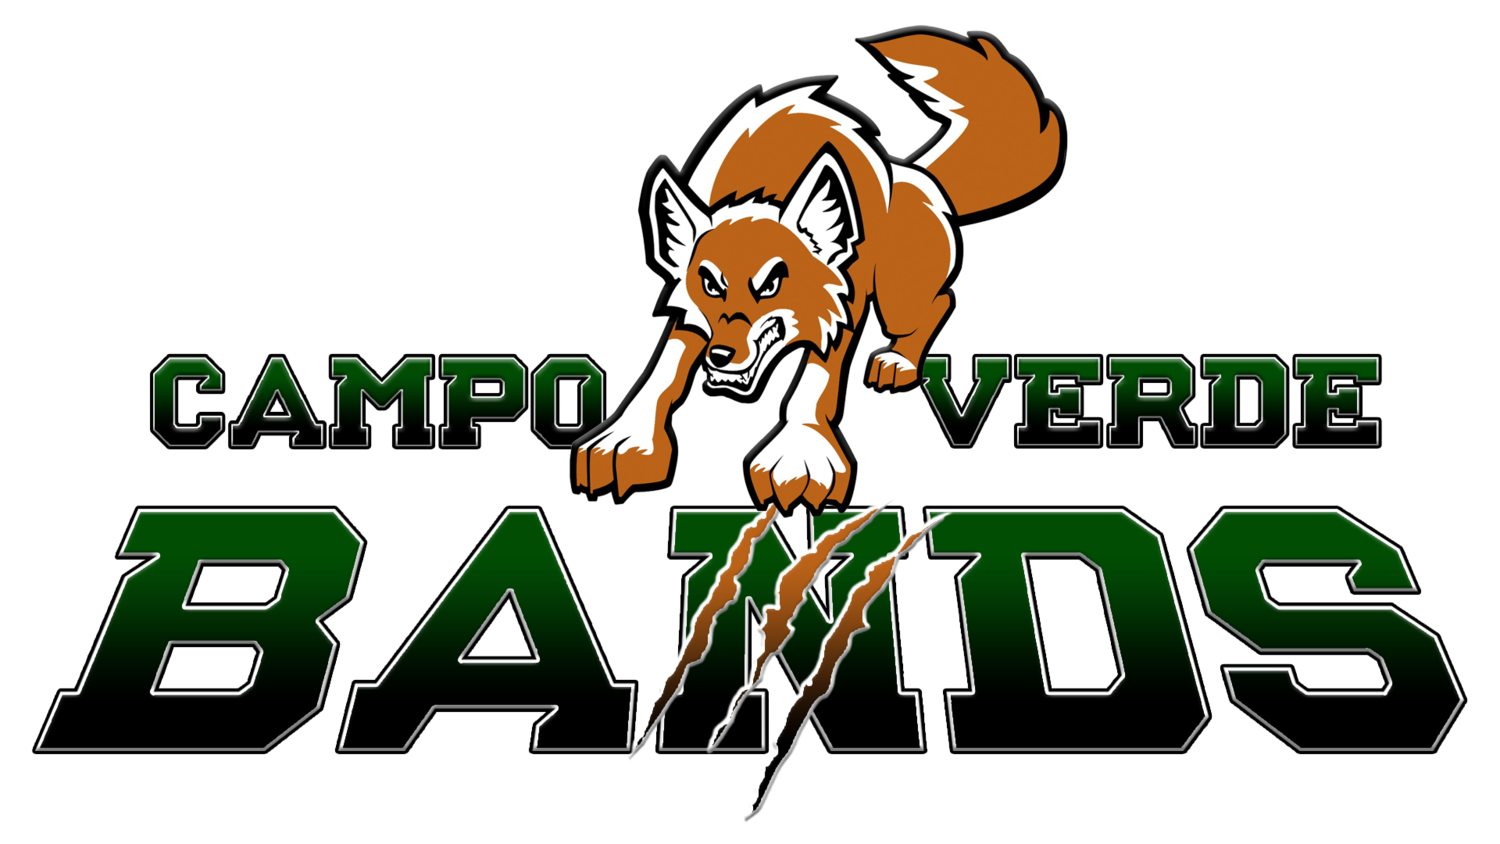 Campo Verde Bands